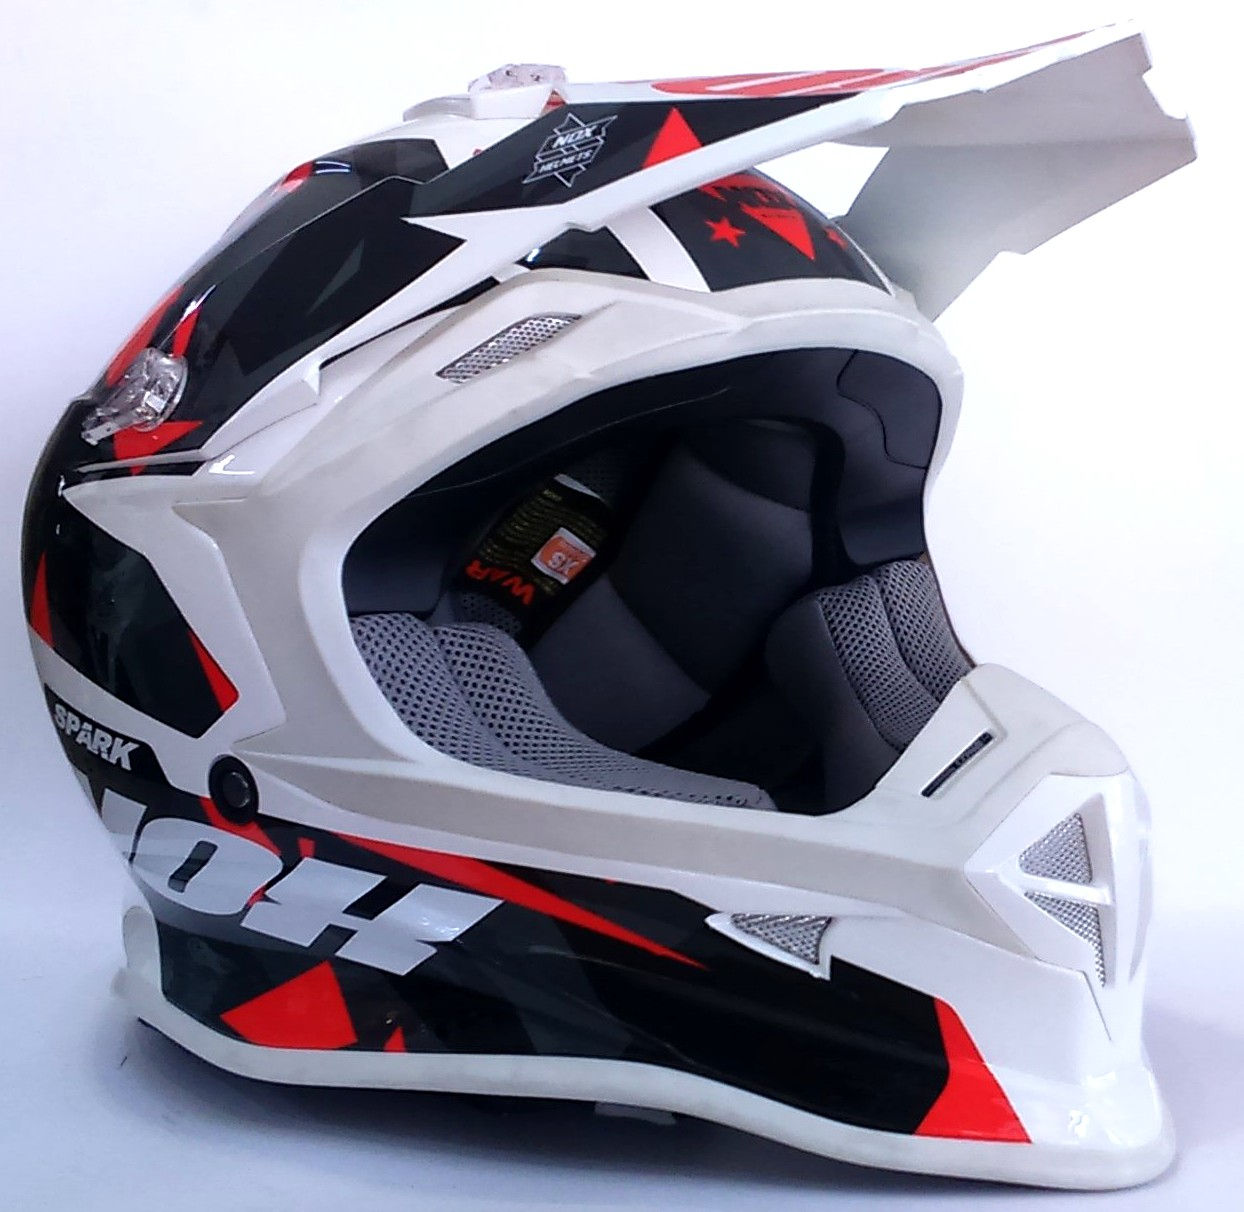 Protections Moto Casque Nox Adulte